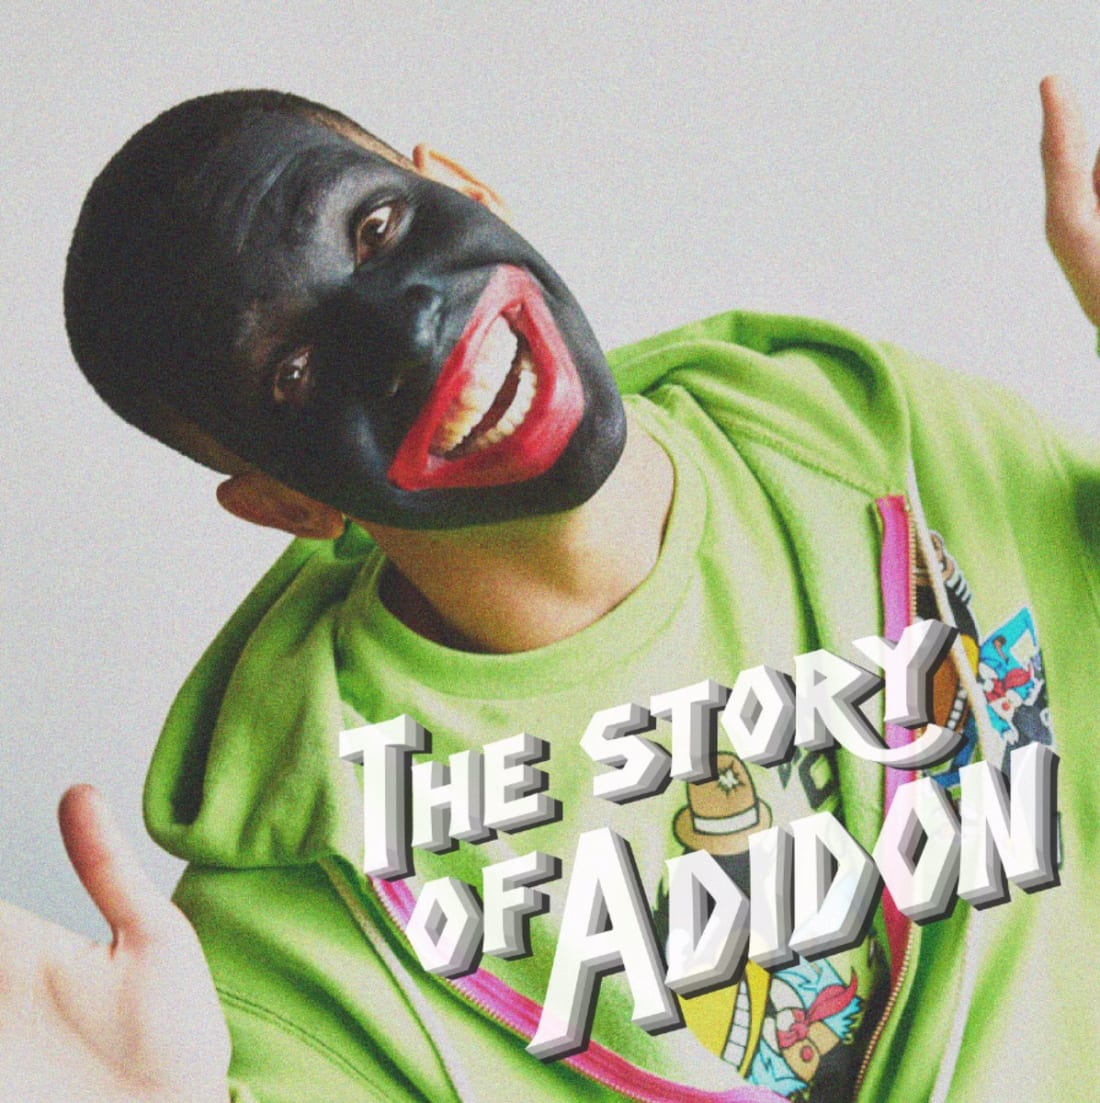 Drake claims Pusha T used blackface photo out of context